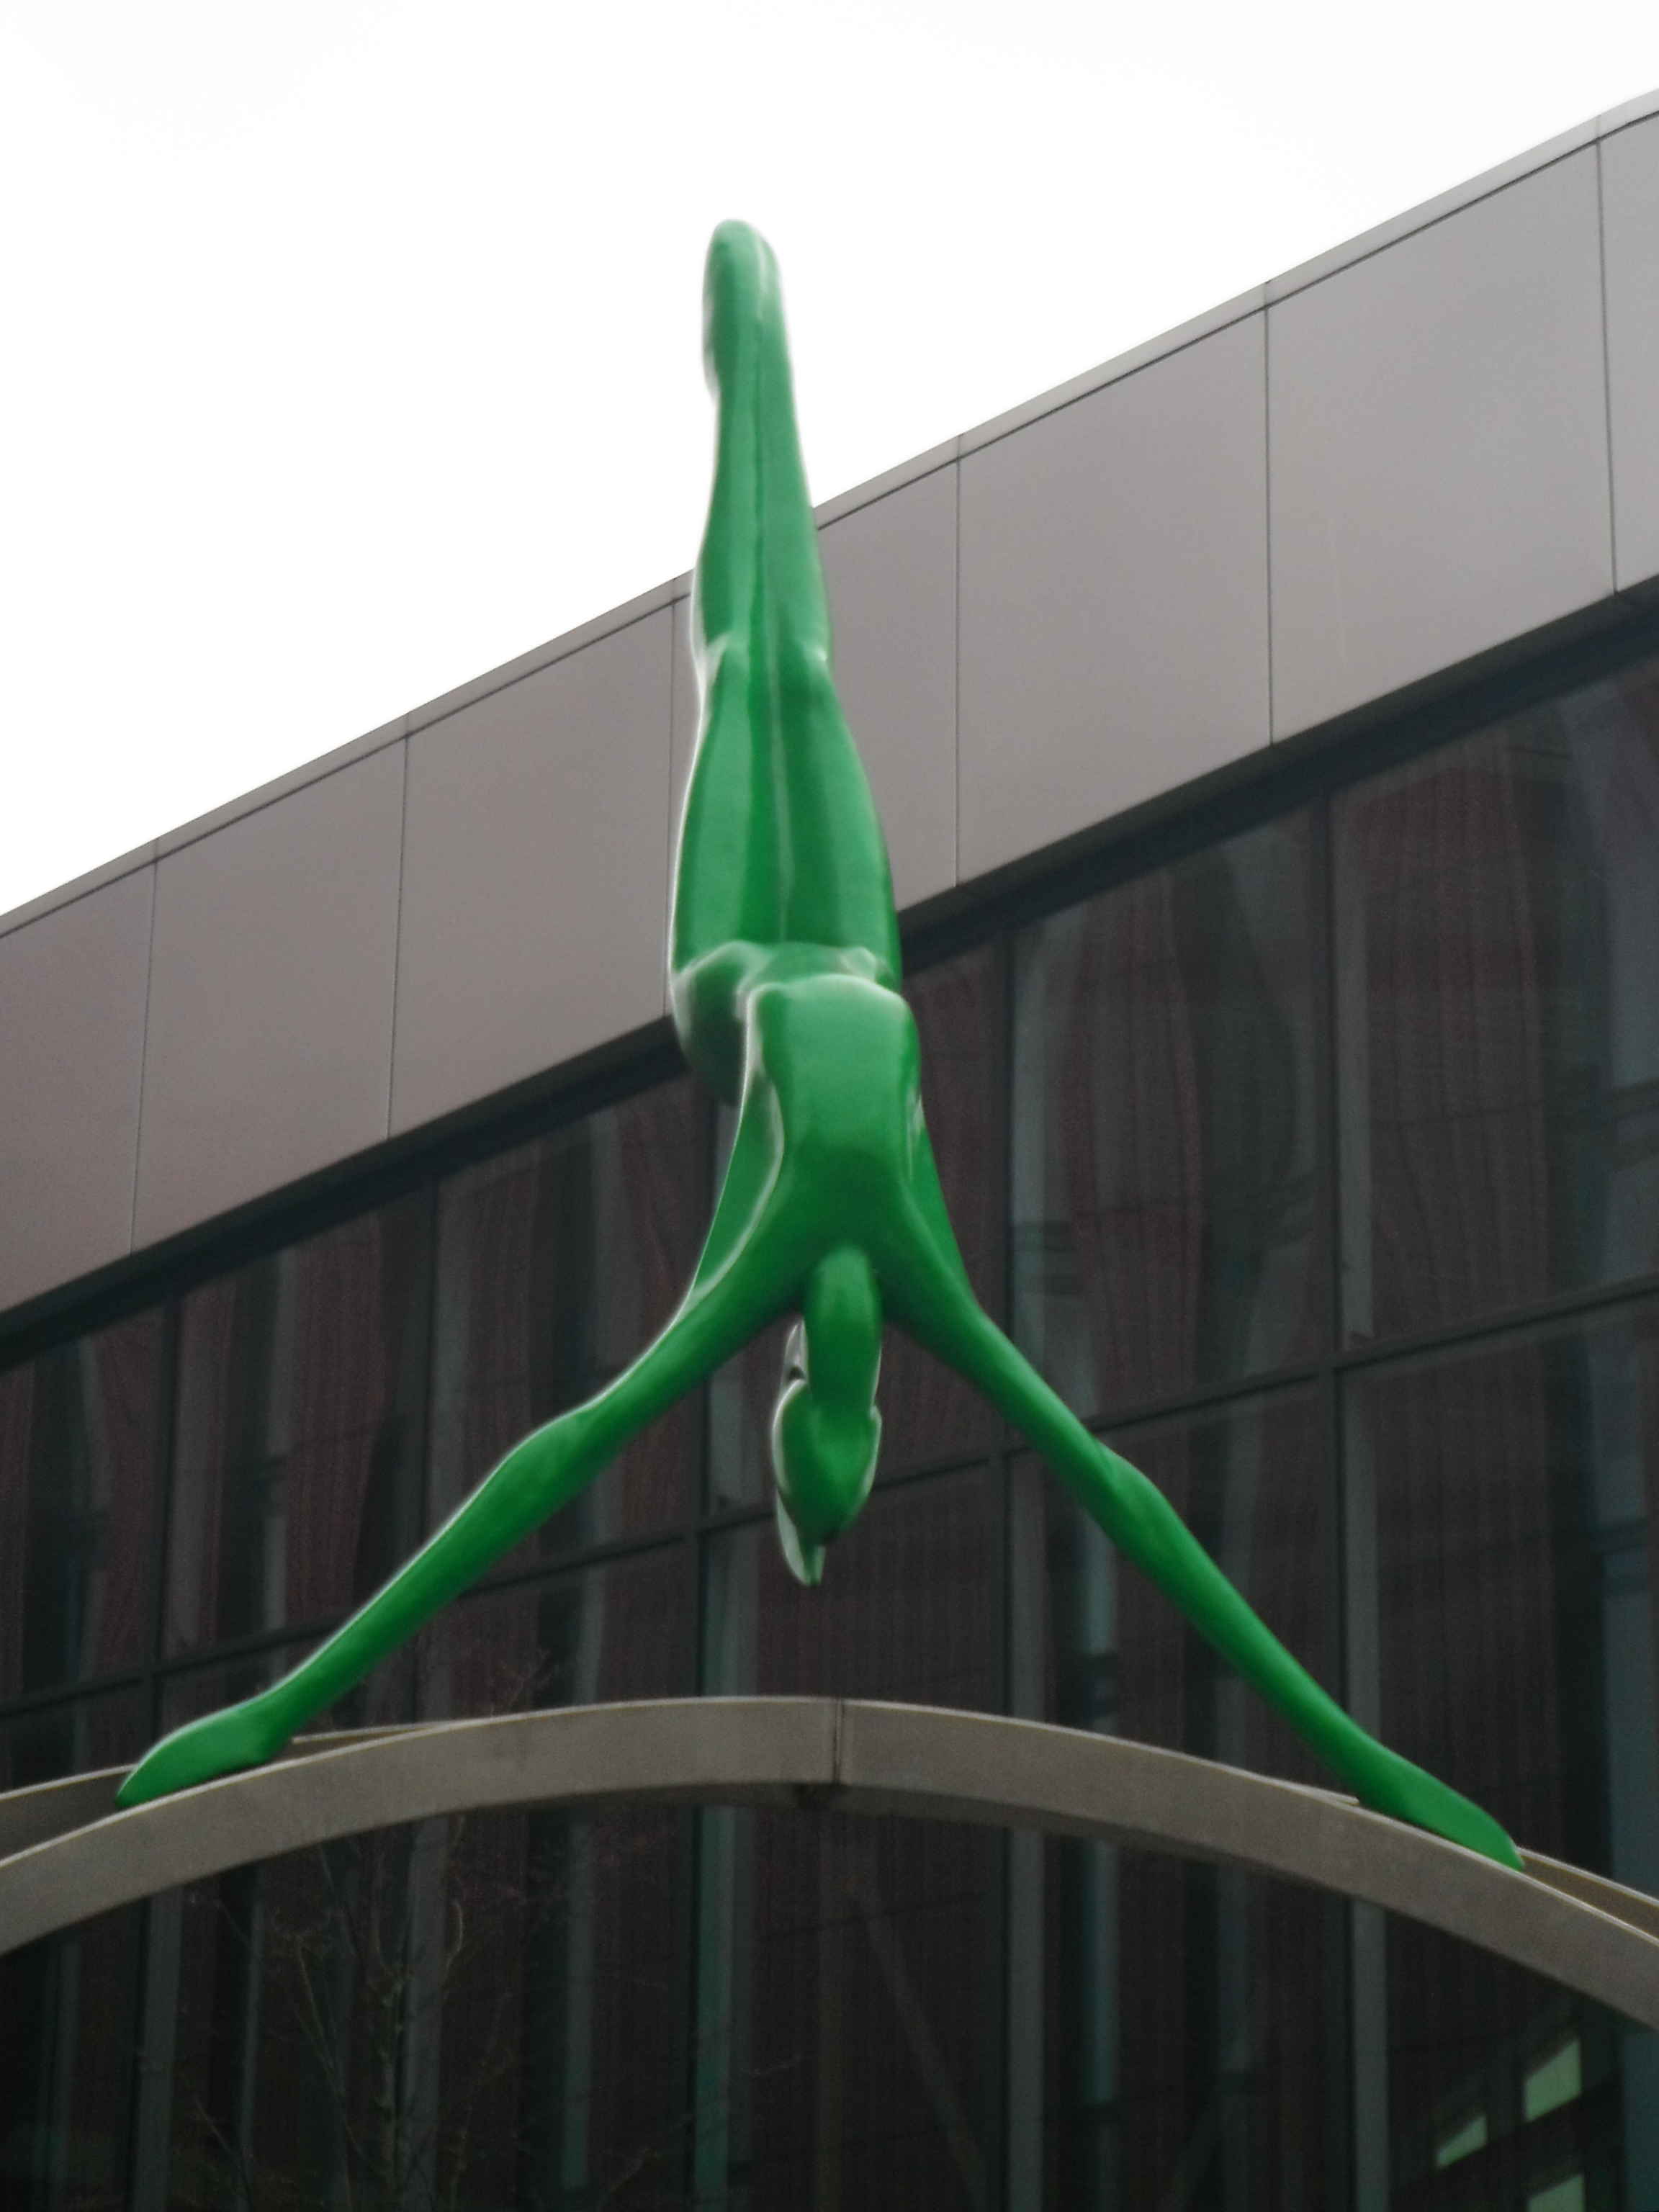 Photo taken by me – The statue of a Gymnast in Manchester city centre.